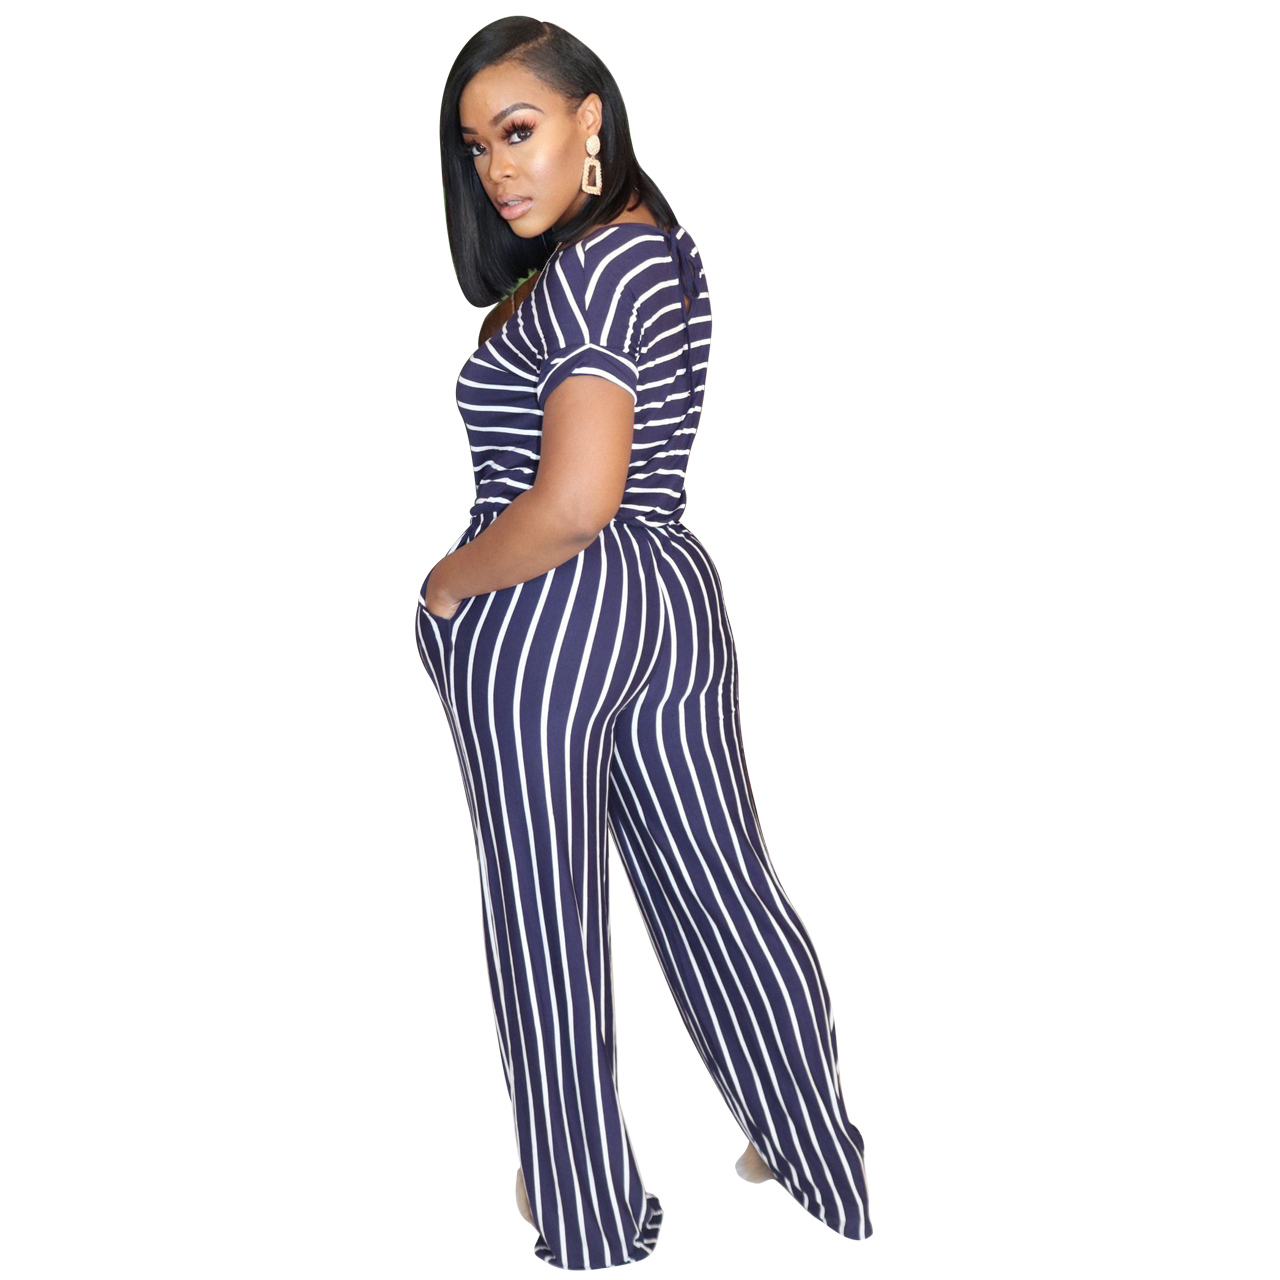 Hcec971f18f5f46f69e4468a0074eb9930 - Fashion Women Stripes Jumpsuits Summer New Arrival Short Sleeves Crew Neck Women Casual Rompers Loose Daily Wear Outfits